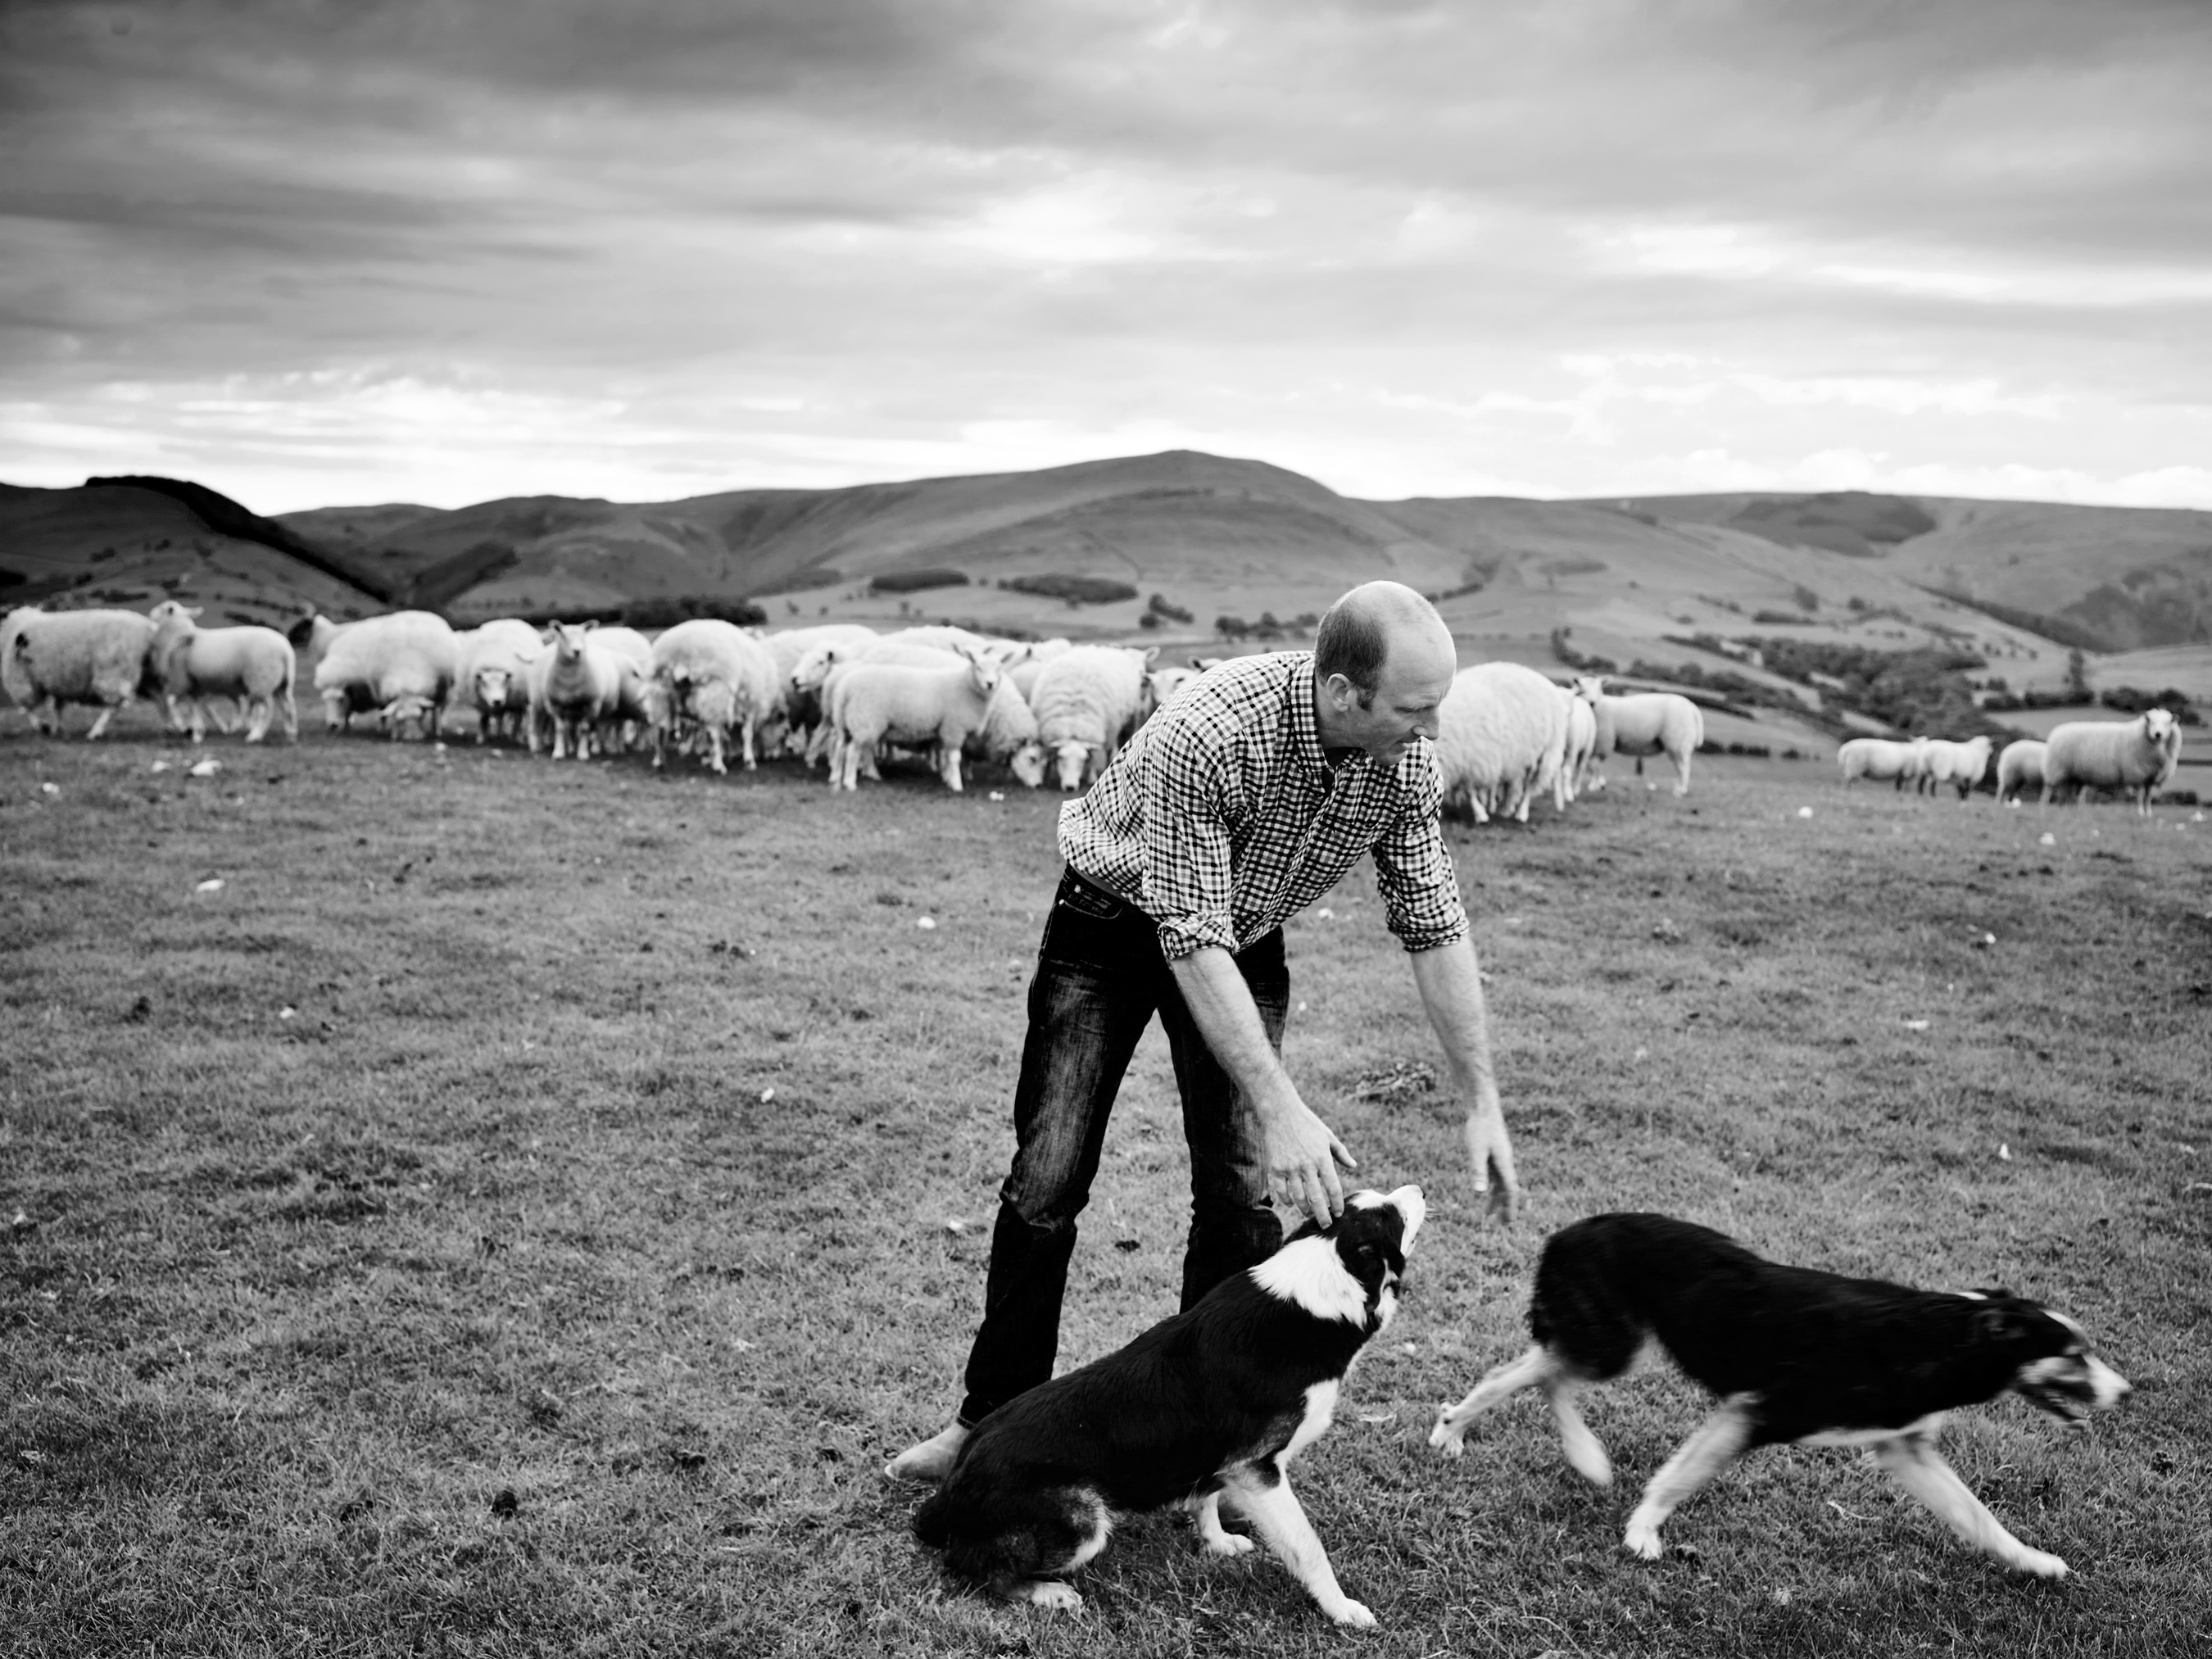 Matt-Stansfield-Photographer-lifestyle-food-producers-lamb-604